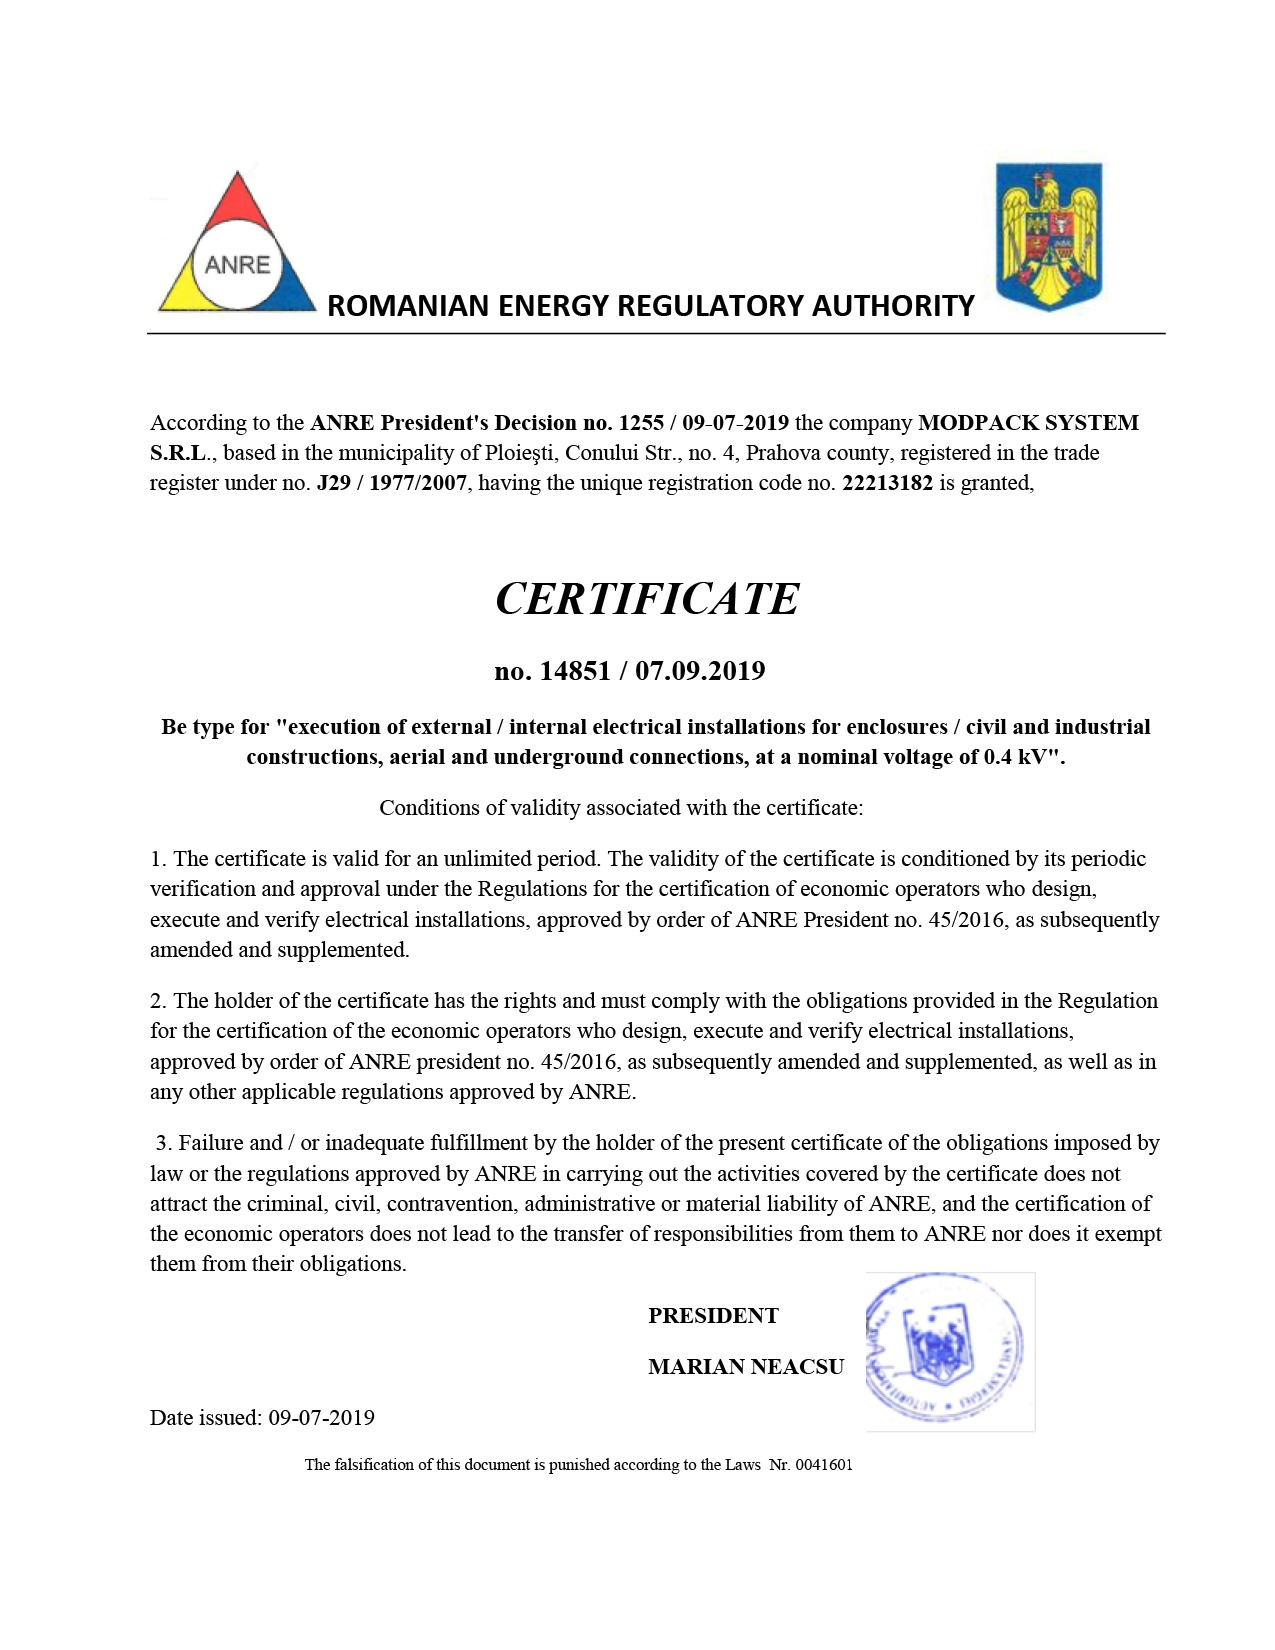 Certificate National Romanian Energy Regulatory Authority